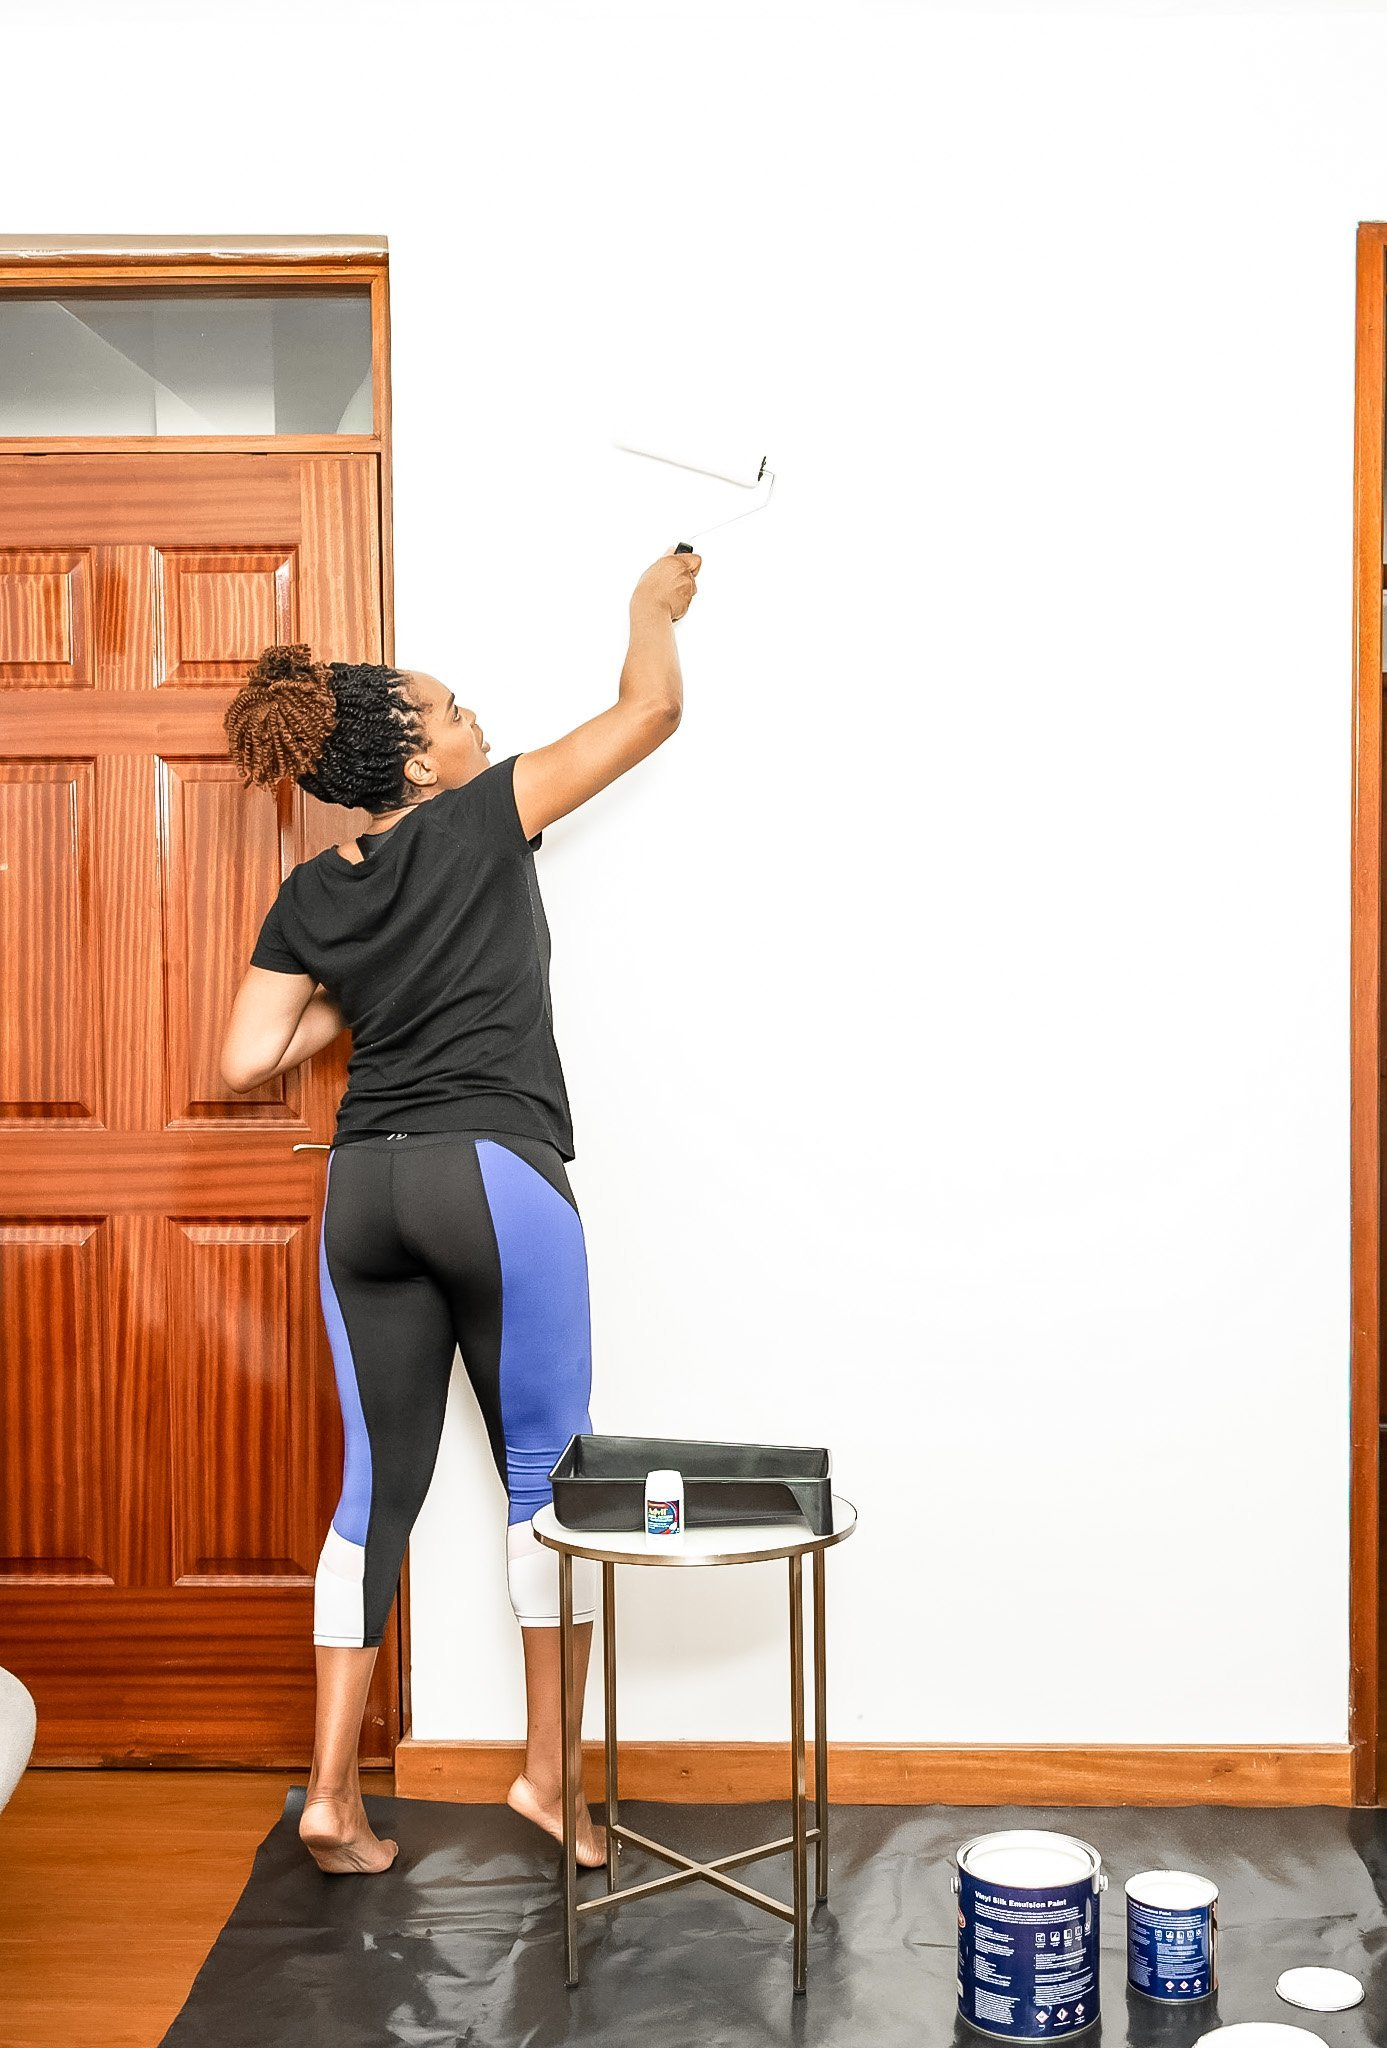 伊耶玛·科拉painting a white wall to demonstrate one of her easy room makeover ideas